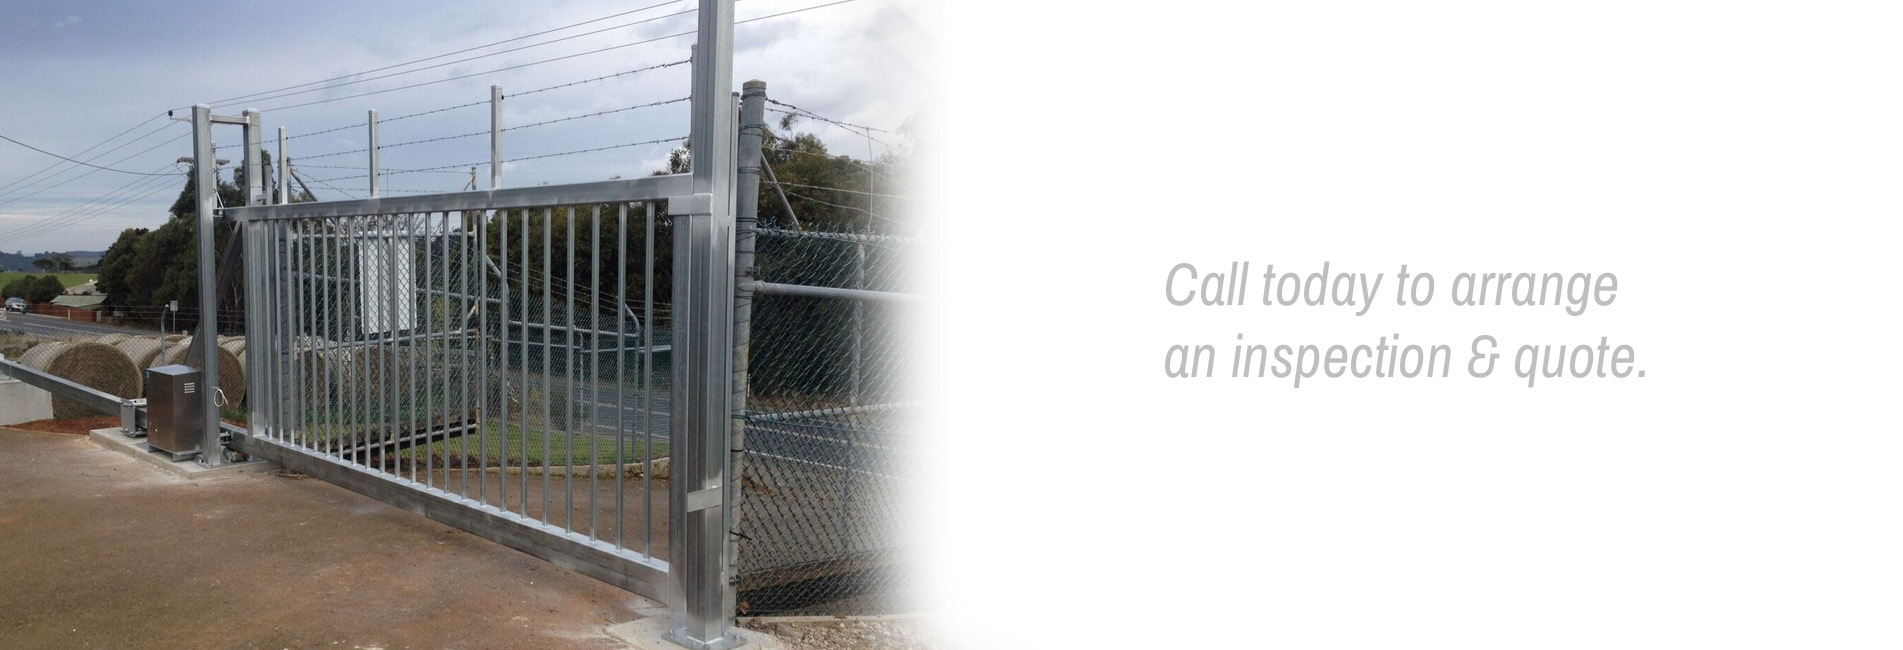 Electric Fences Burnie, Alarm Systems Port Sorell, Camera Installer Ulverstone, Alarm Installer Tasmania, Phone Installer Devonport, Phone Points Launceston, Data Points Burnie